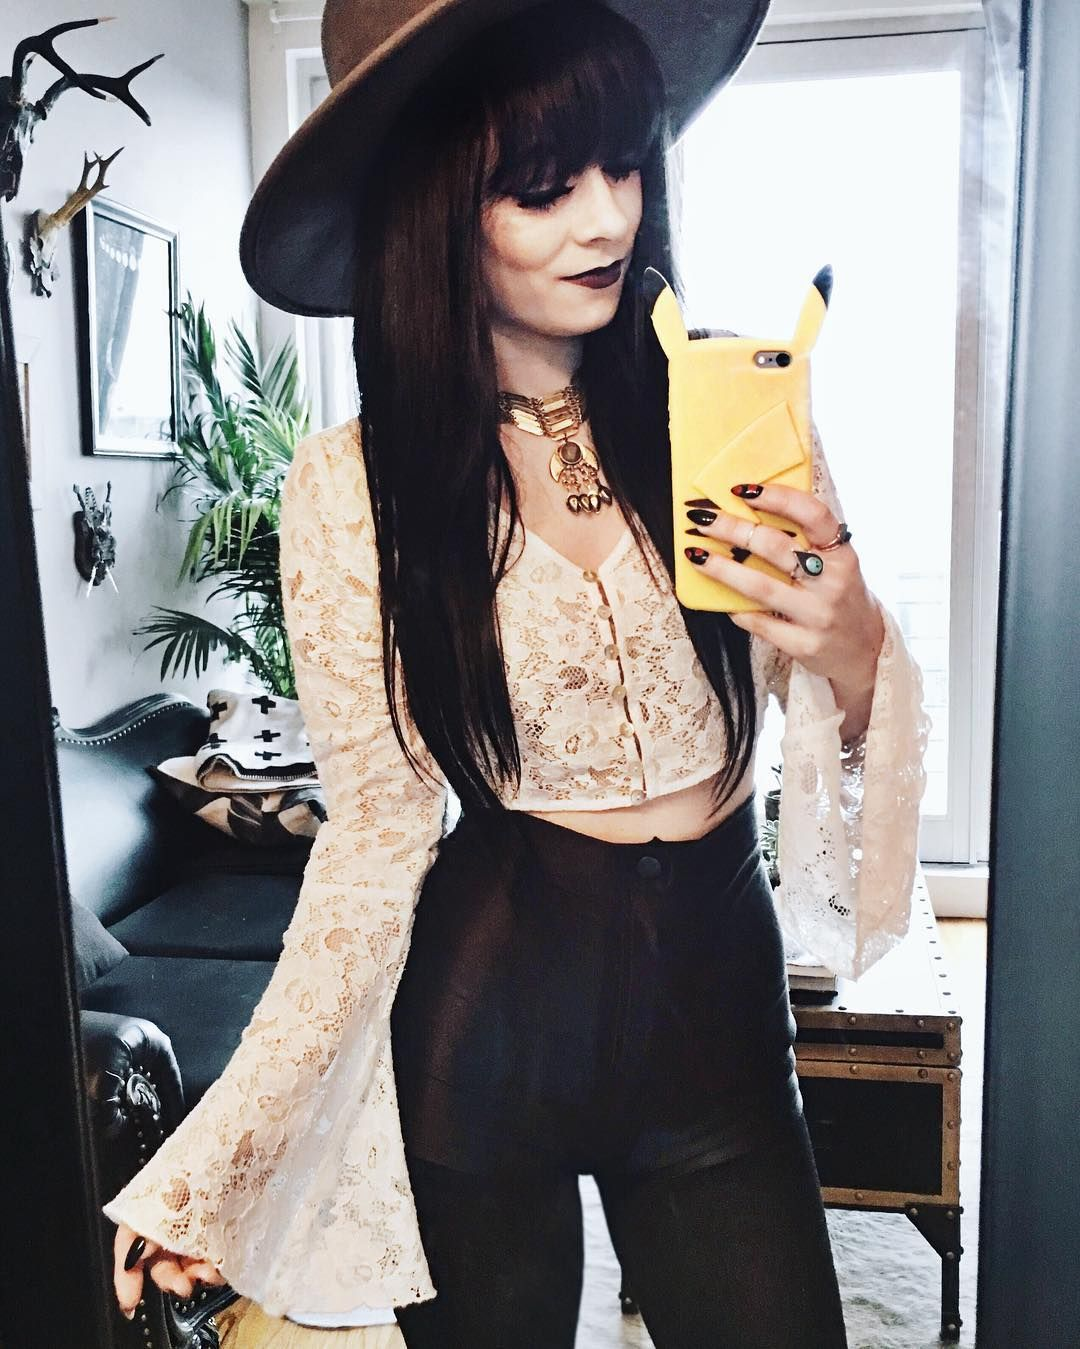 Rachel Marie Iwanyszyn On Instagram Good Witch Or Bad Witch Modern Witch Fashion Witchy Outfit Fashion